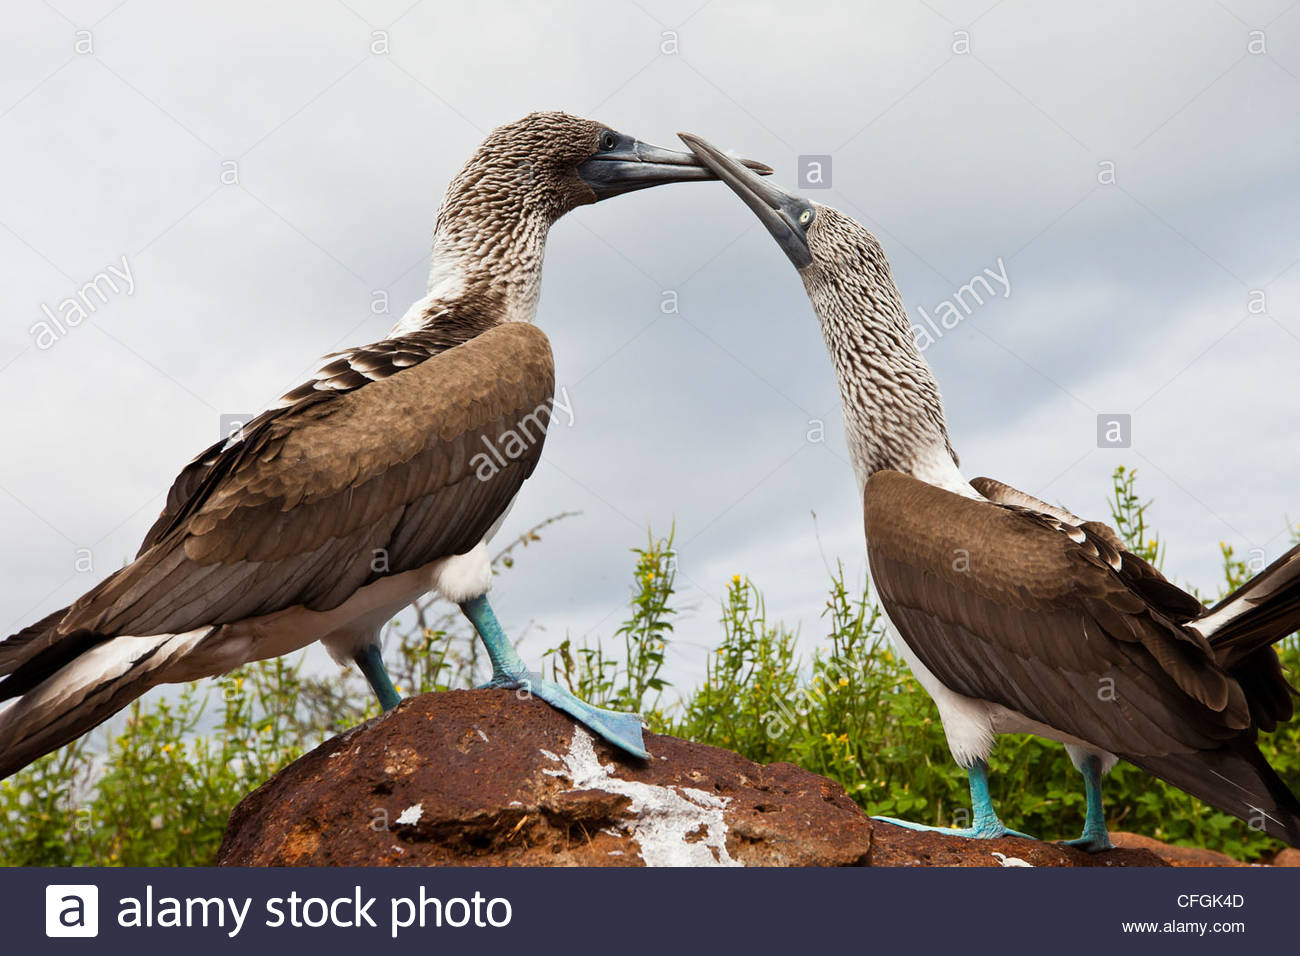 Blue-footed boobies touch beaks in a courtship ritual. - Stock Image